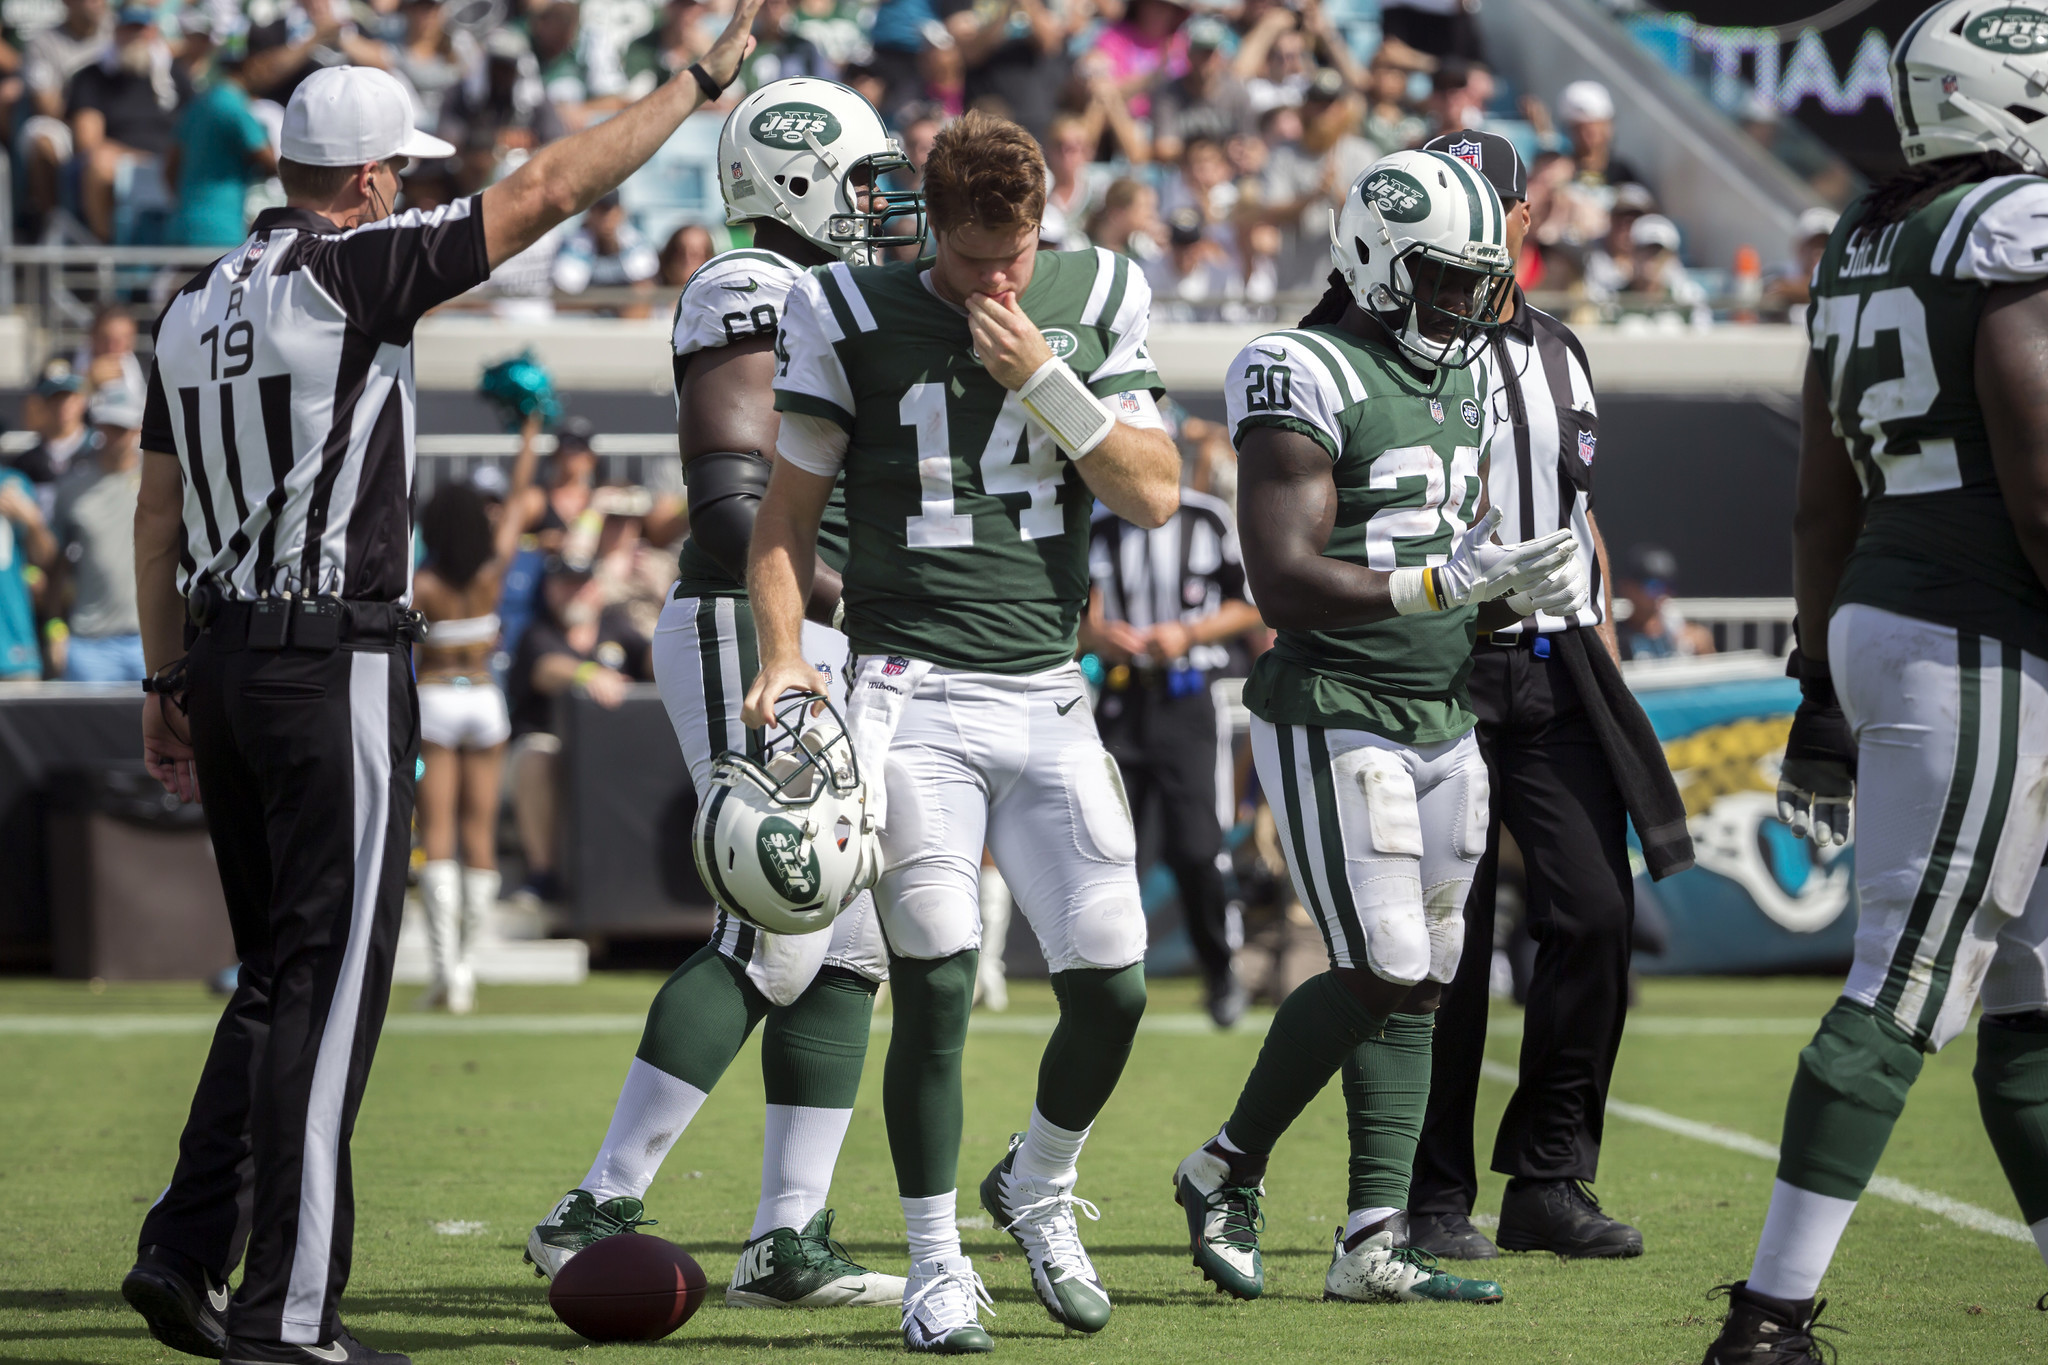 cdc95ab4 Dolphins defense looks to get back on track against Jets - South ...